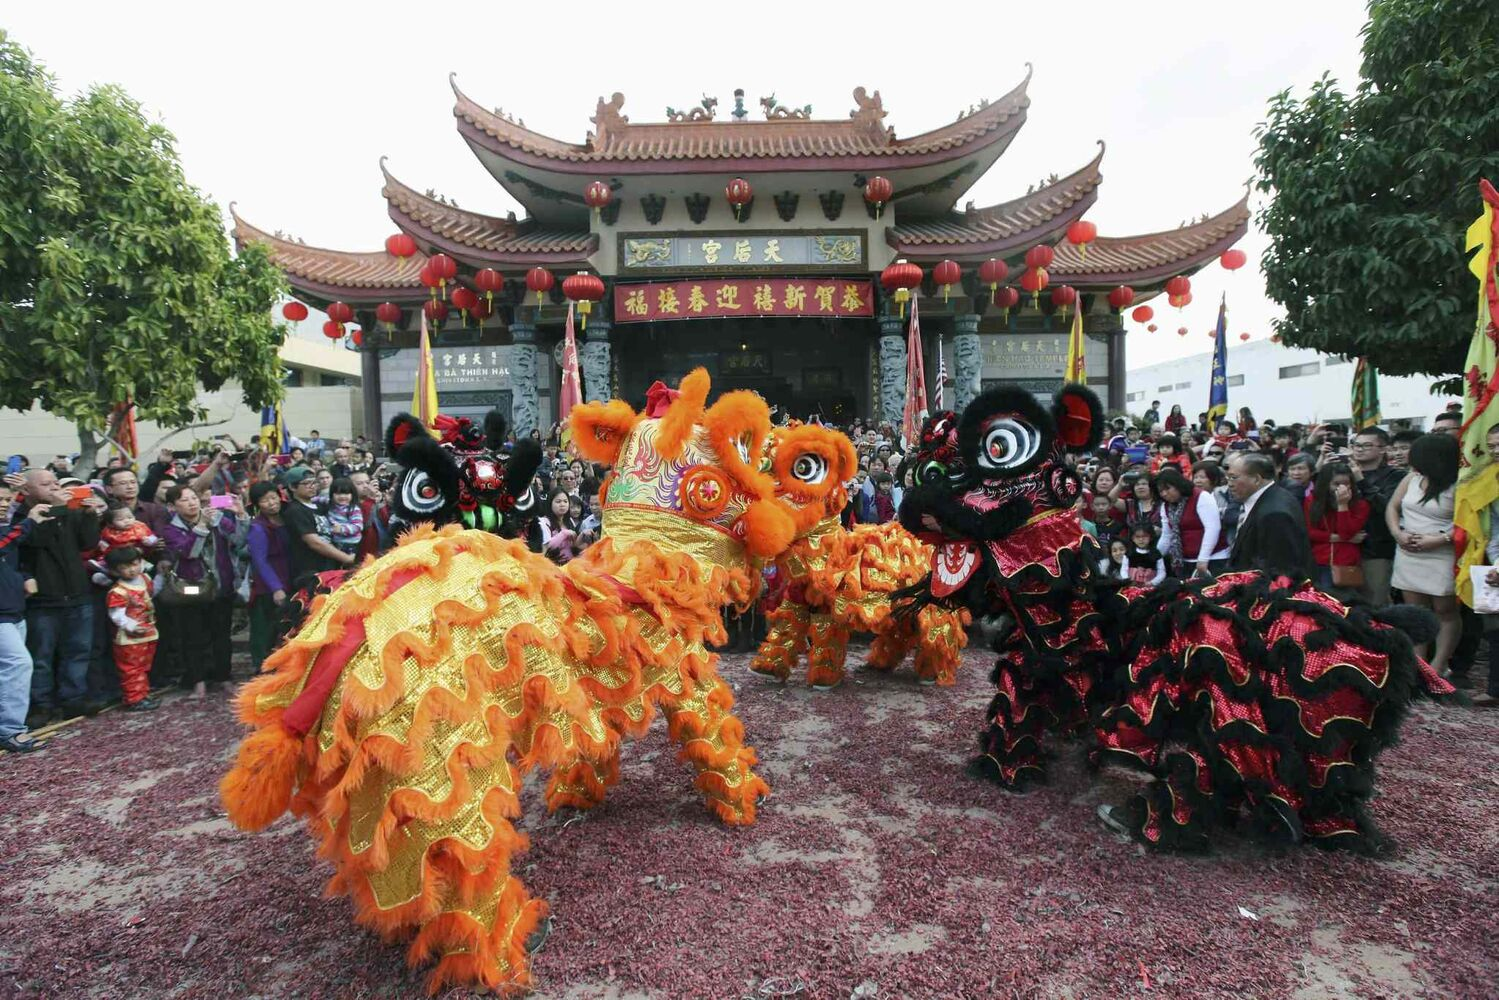 People watch a dragon dance at the Thien Hau temple in Los Angeles, on Friday, Jan. 31, 2014.  (Nick Ut / The Associated Press)